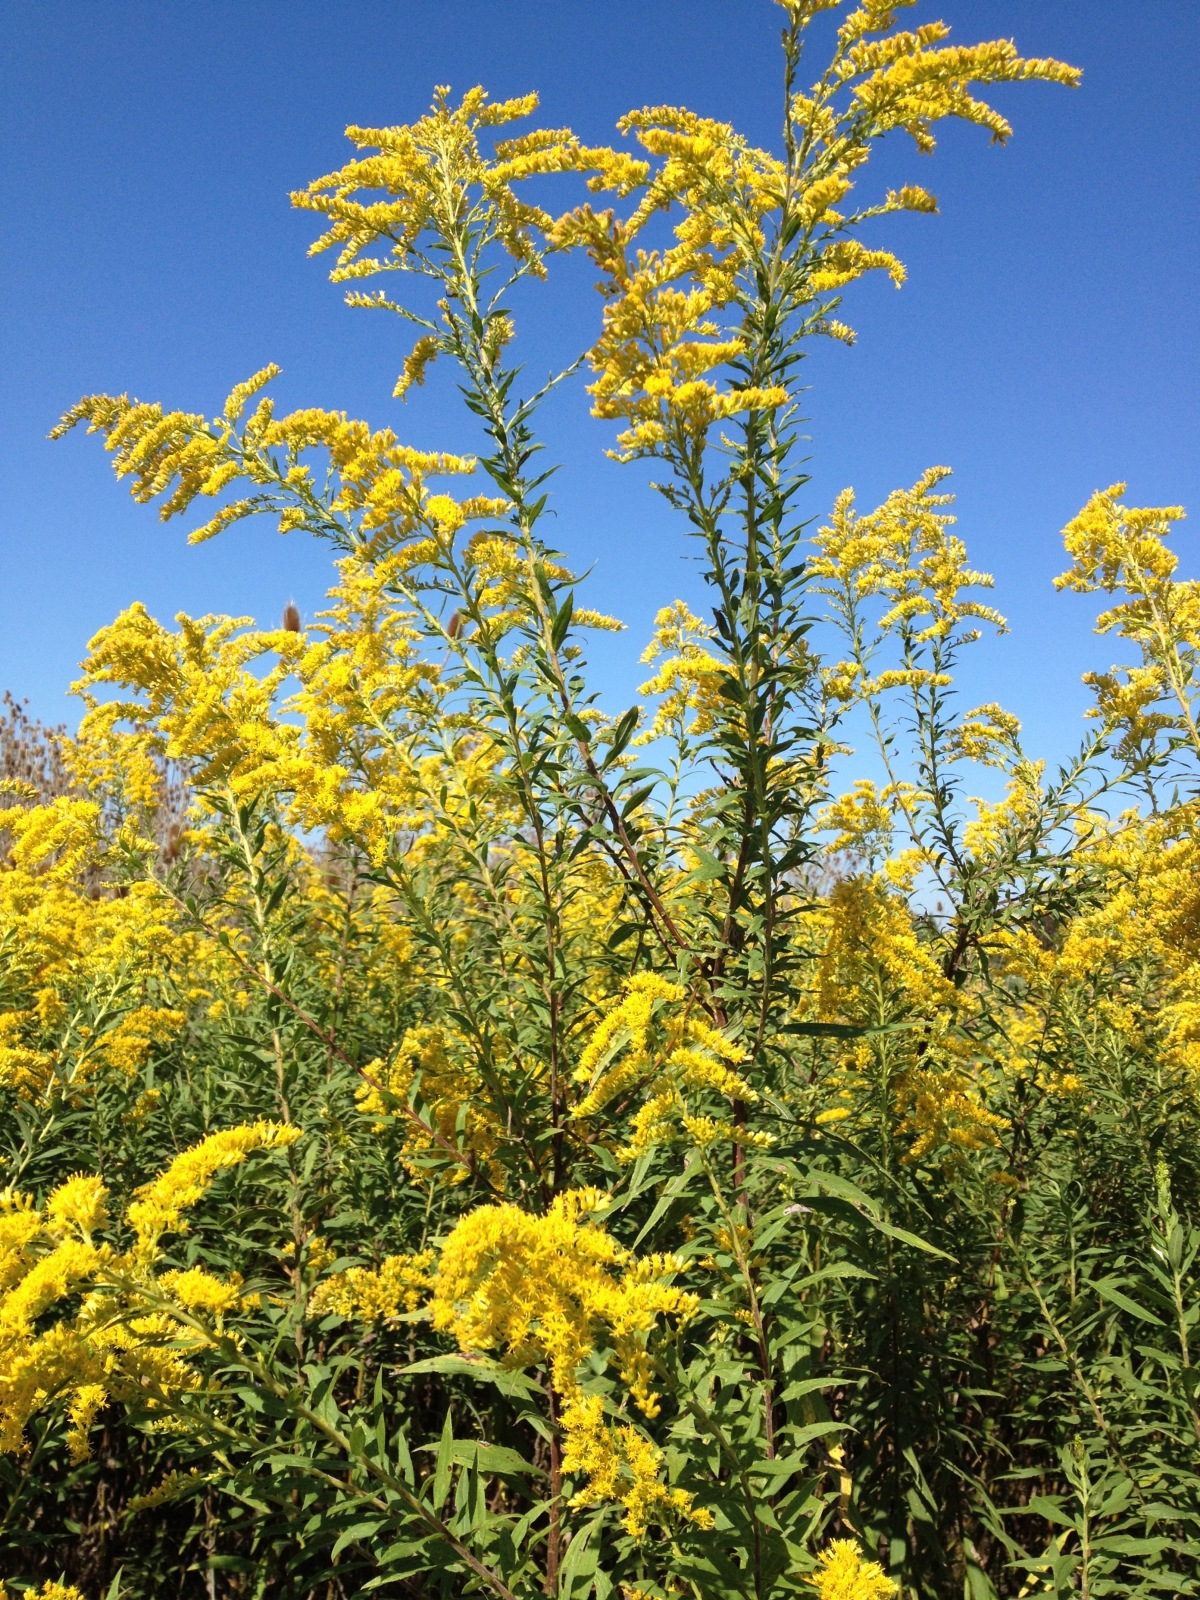 The Goldenrod Proclaims Its Crown And The Bees Fulfill Their Mission.